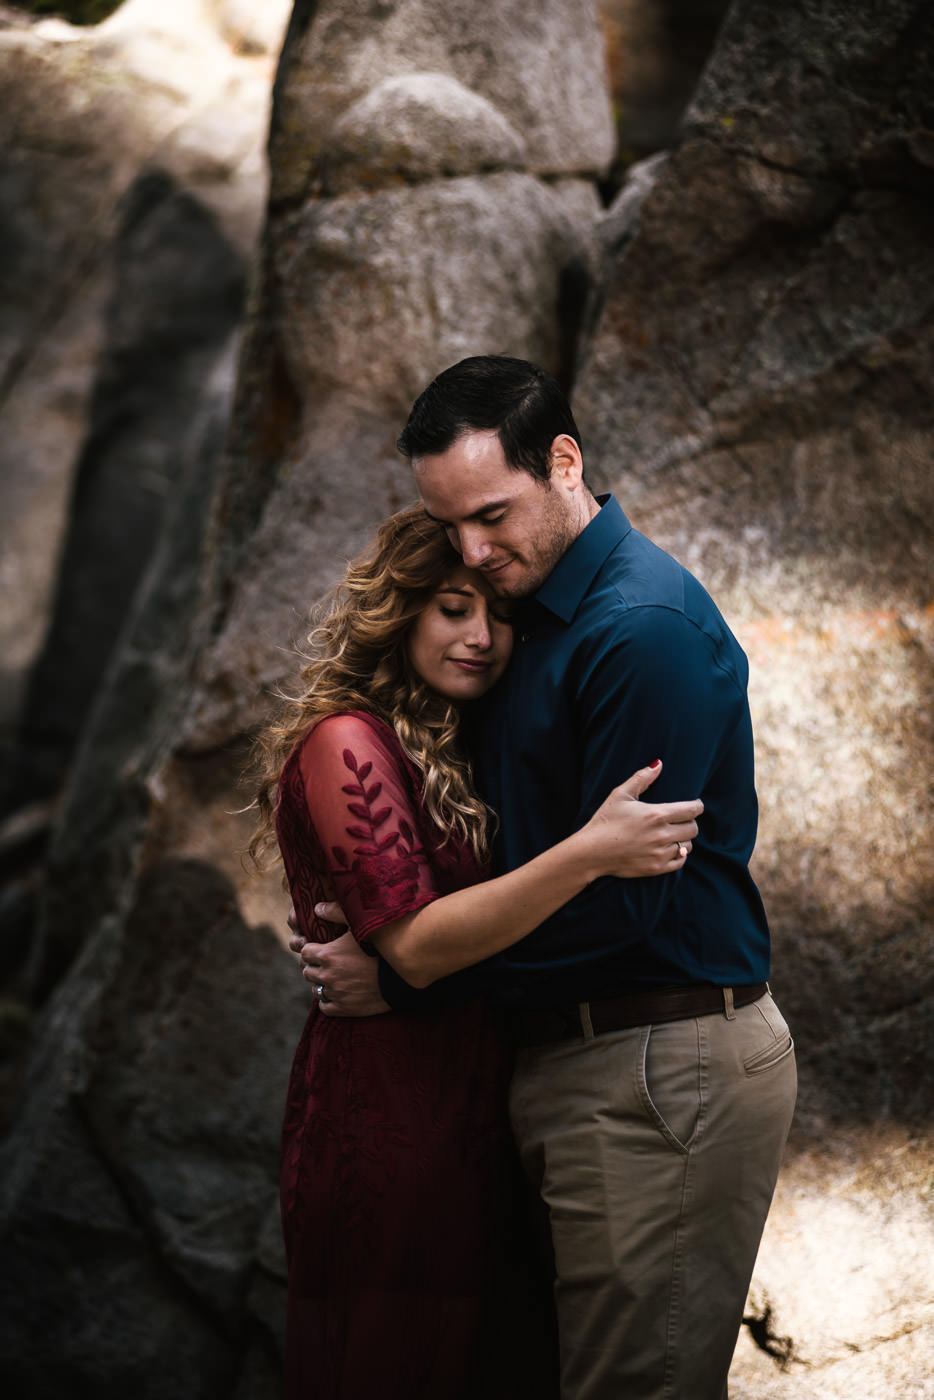 Beautiful engagement photos in the mountains.